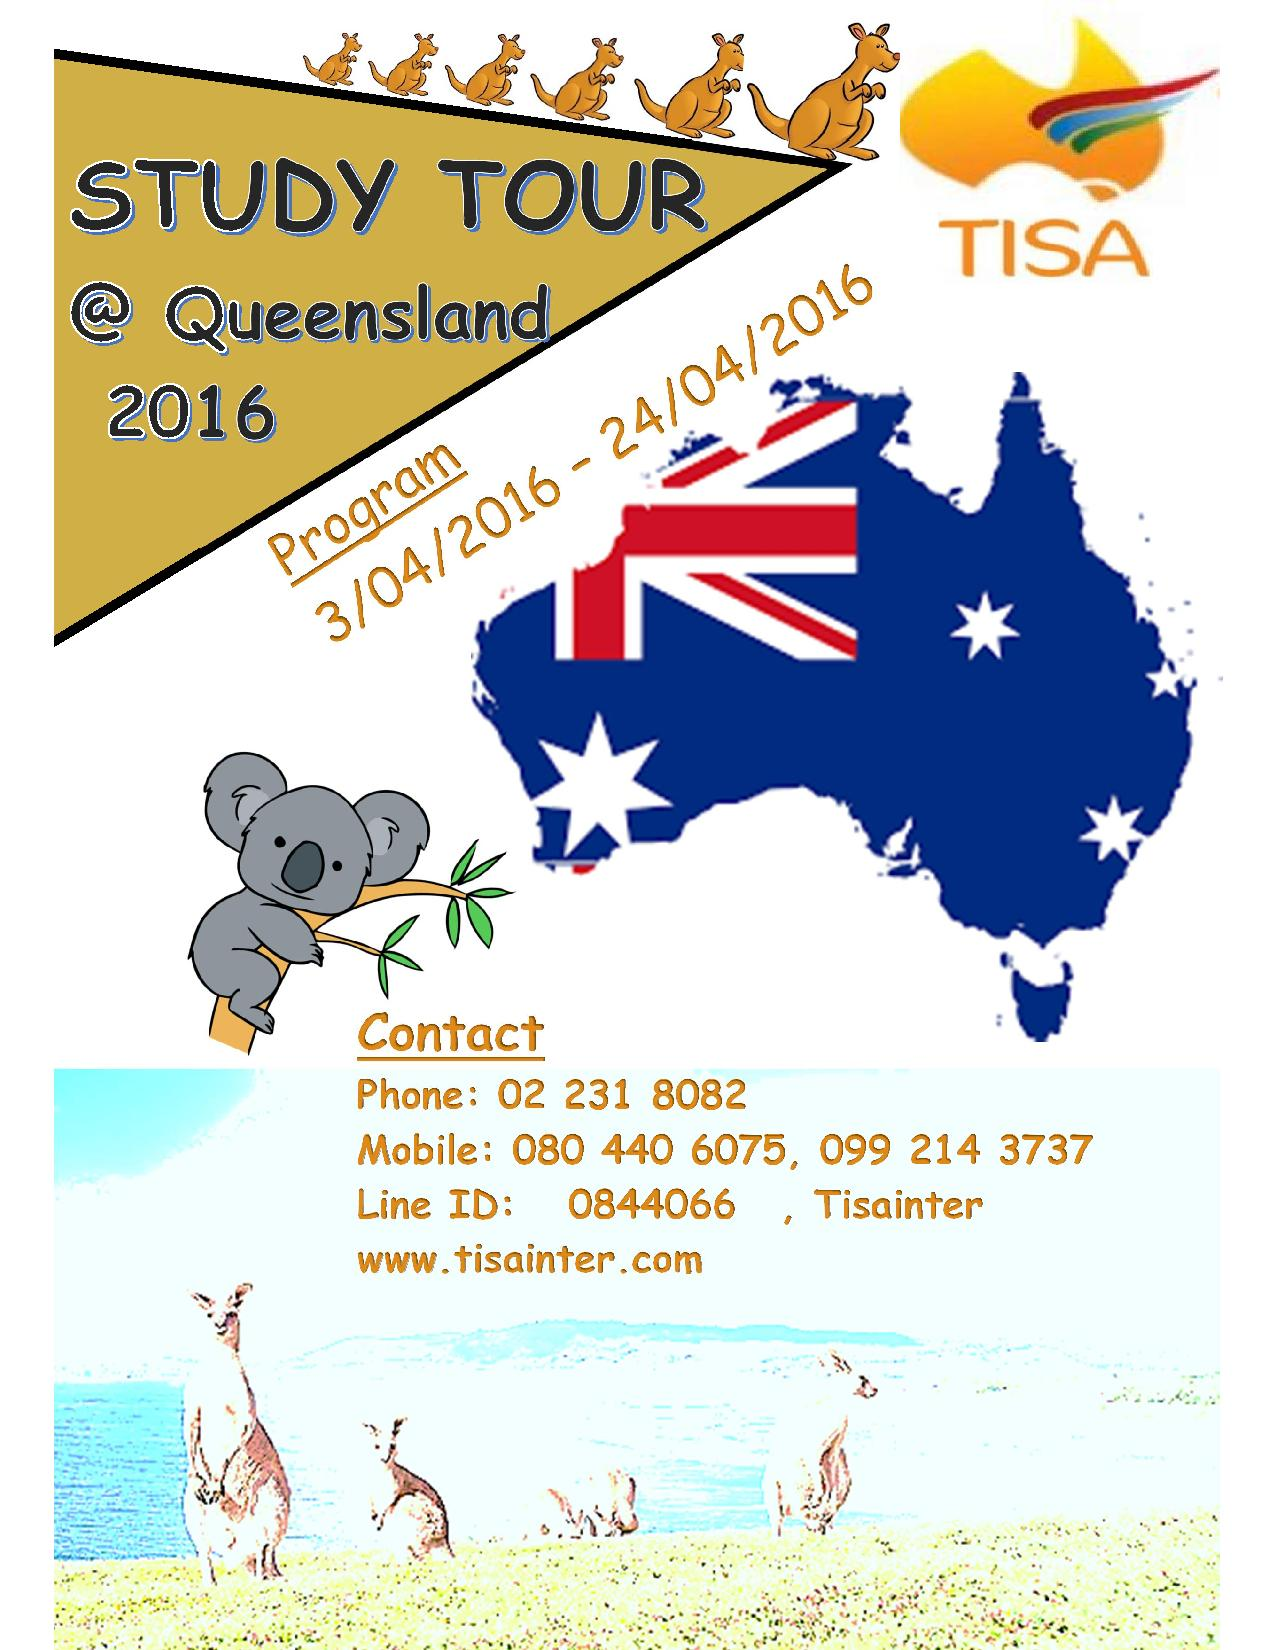 Study Tours Brisbane - Home | Facebook